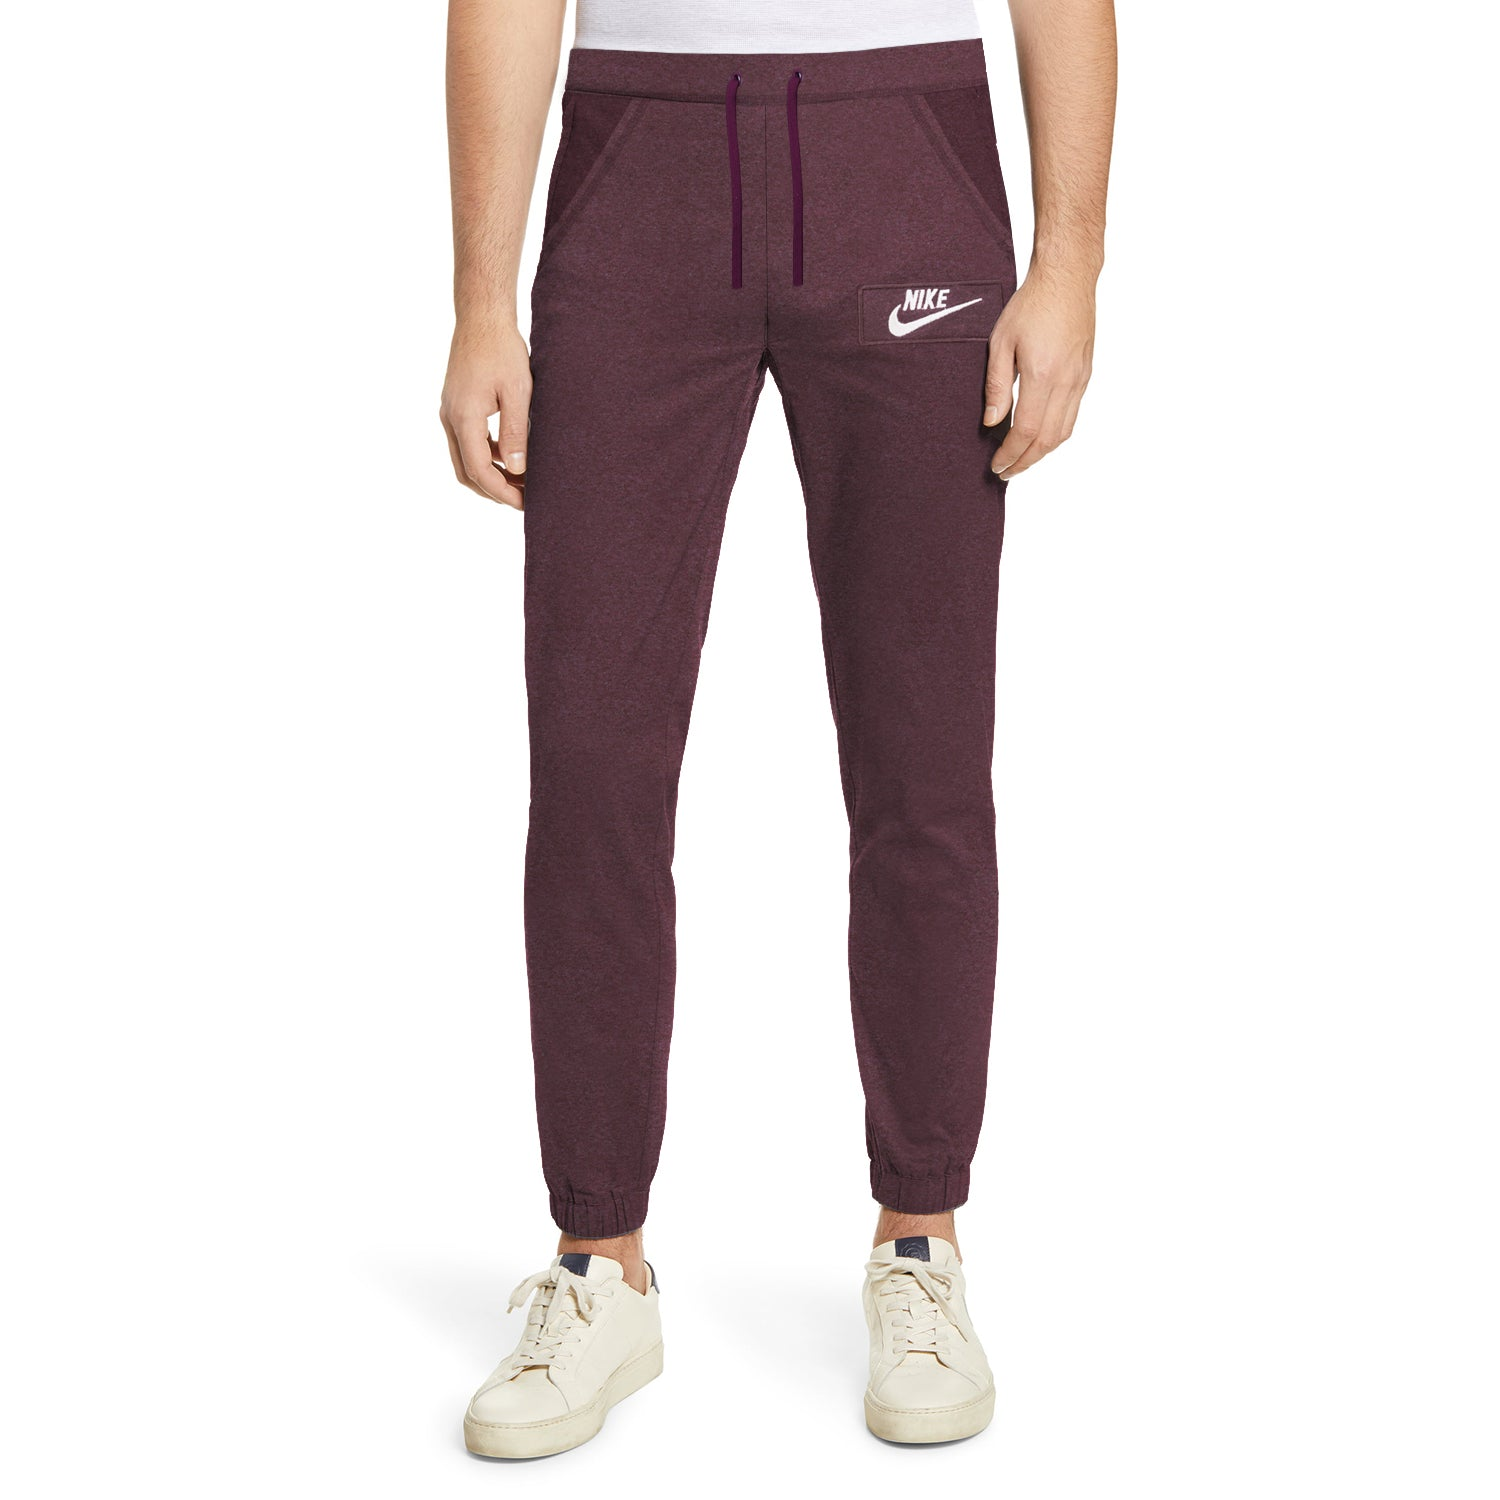 NK Fleece Gathering Fit Pant Style Jogging Trouser For Men-Burgundy Melange with White Embroidery-BE12956